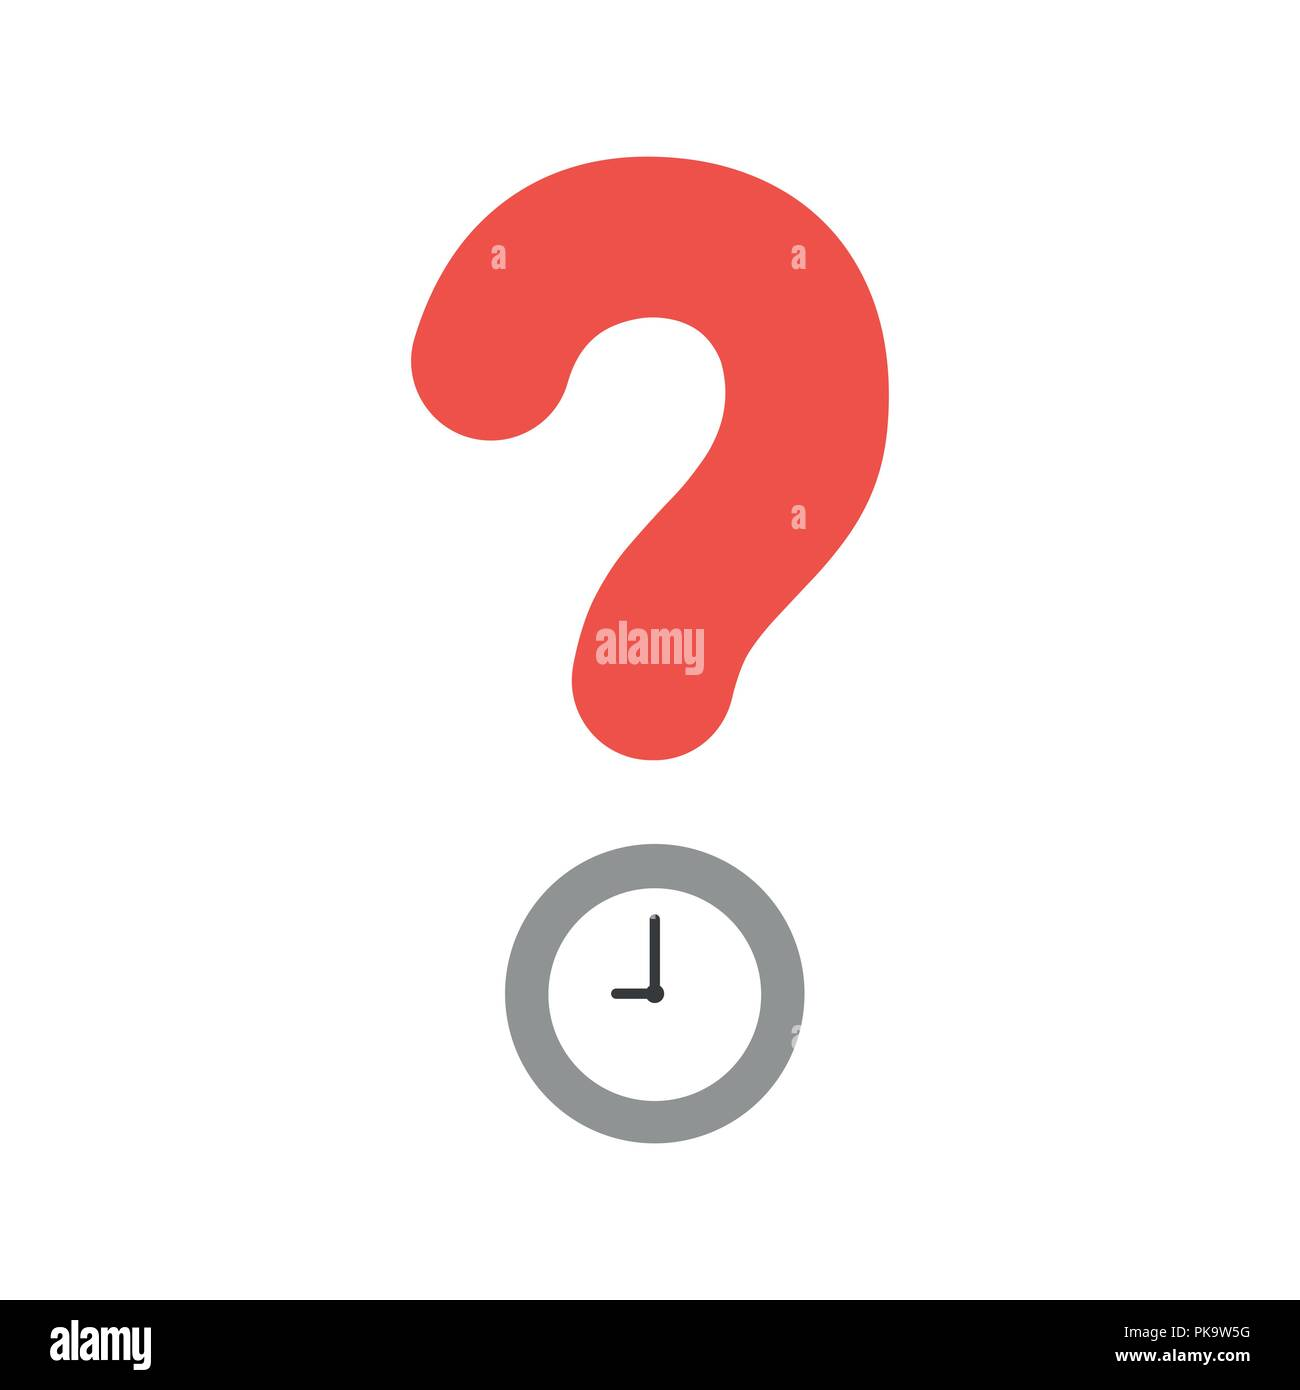 Vector illustration icon concept of question mark with clock time. - Stock Image